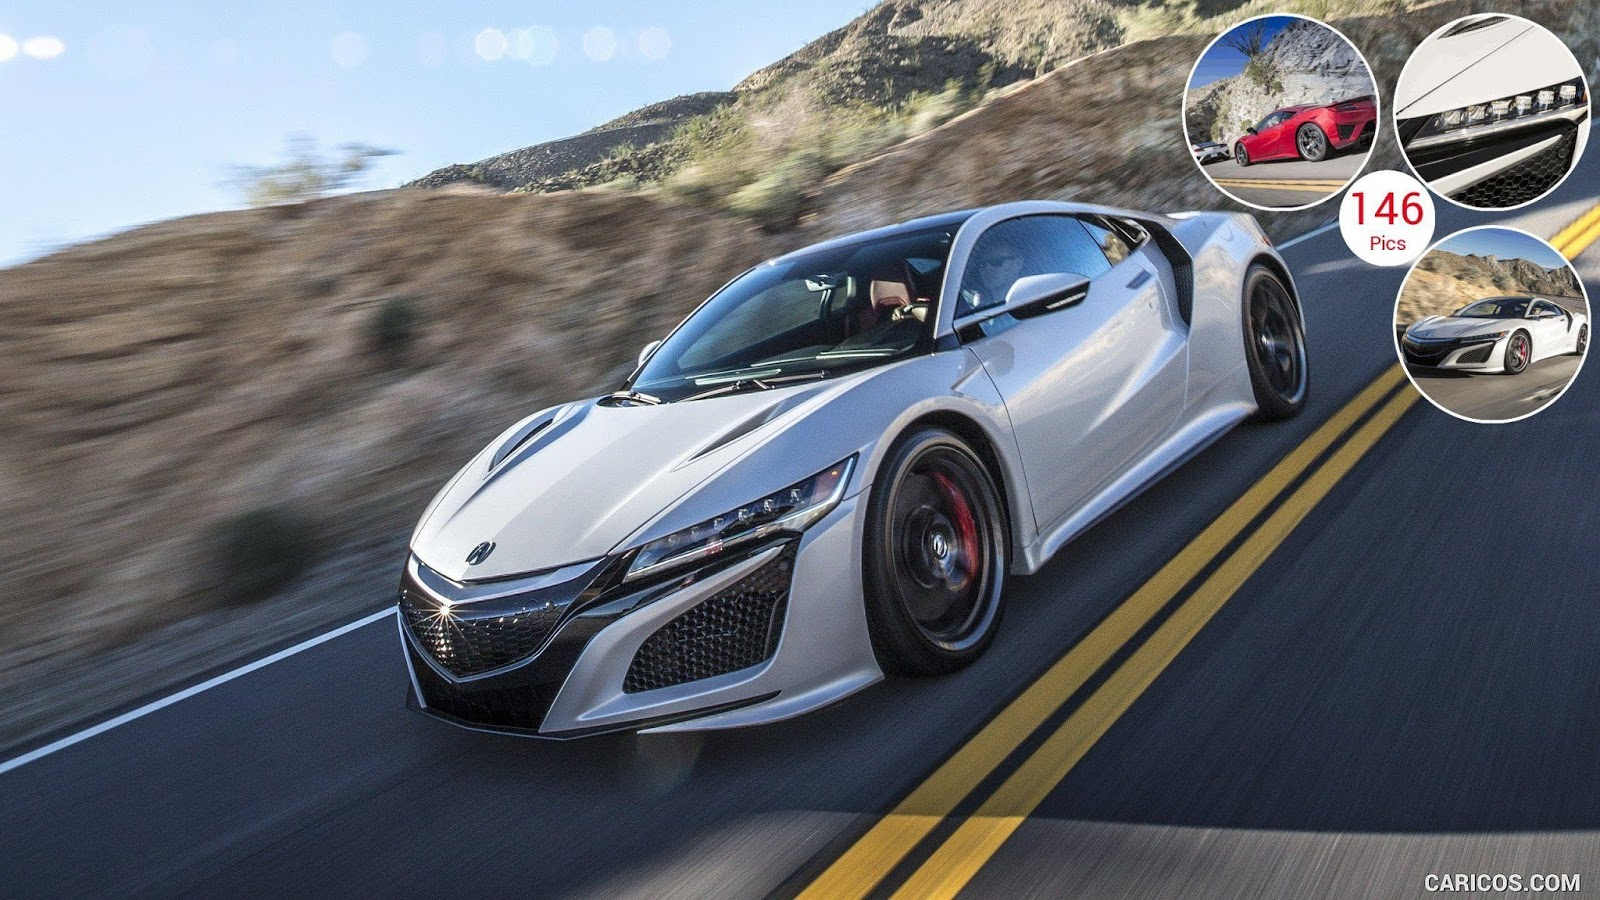 2017 Acura NSX White car wallpapers